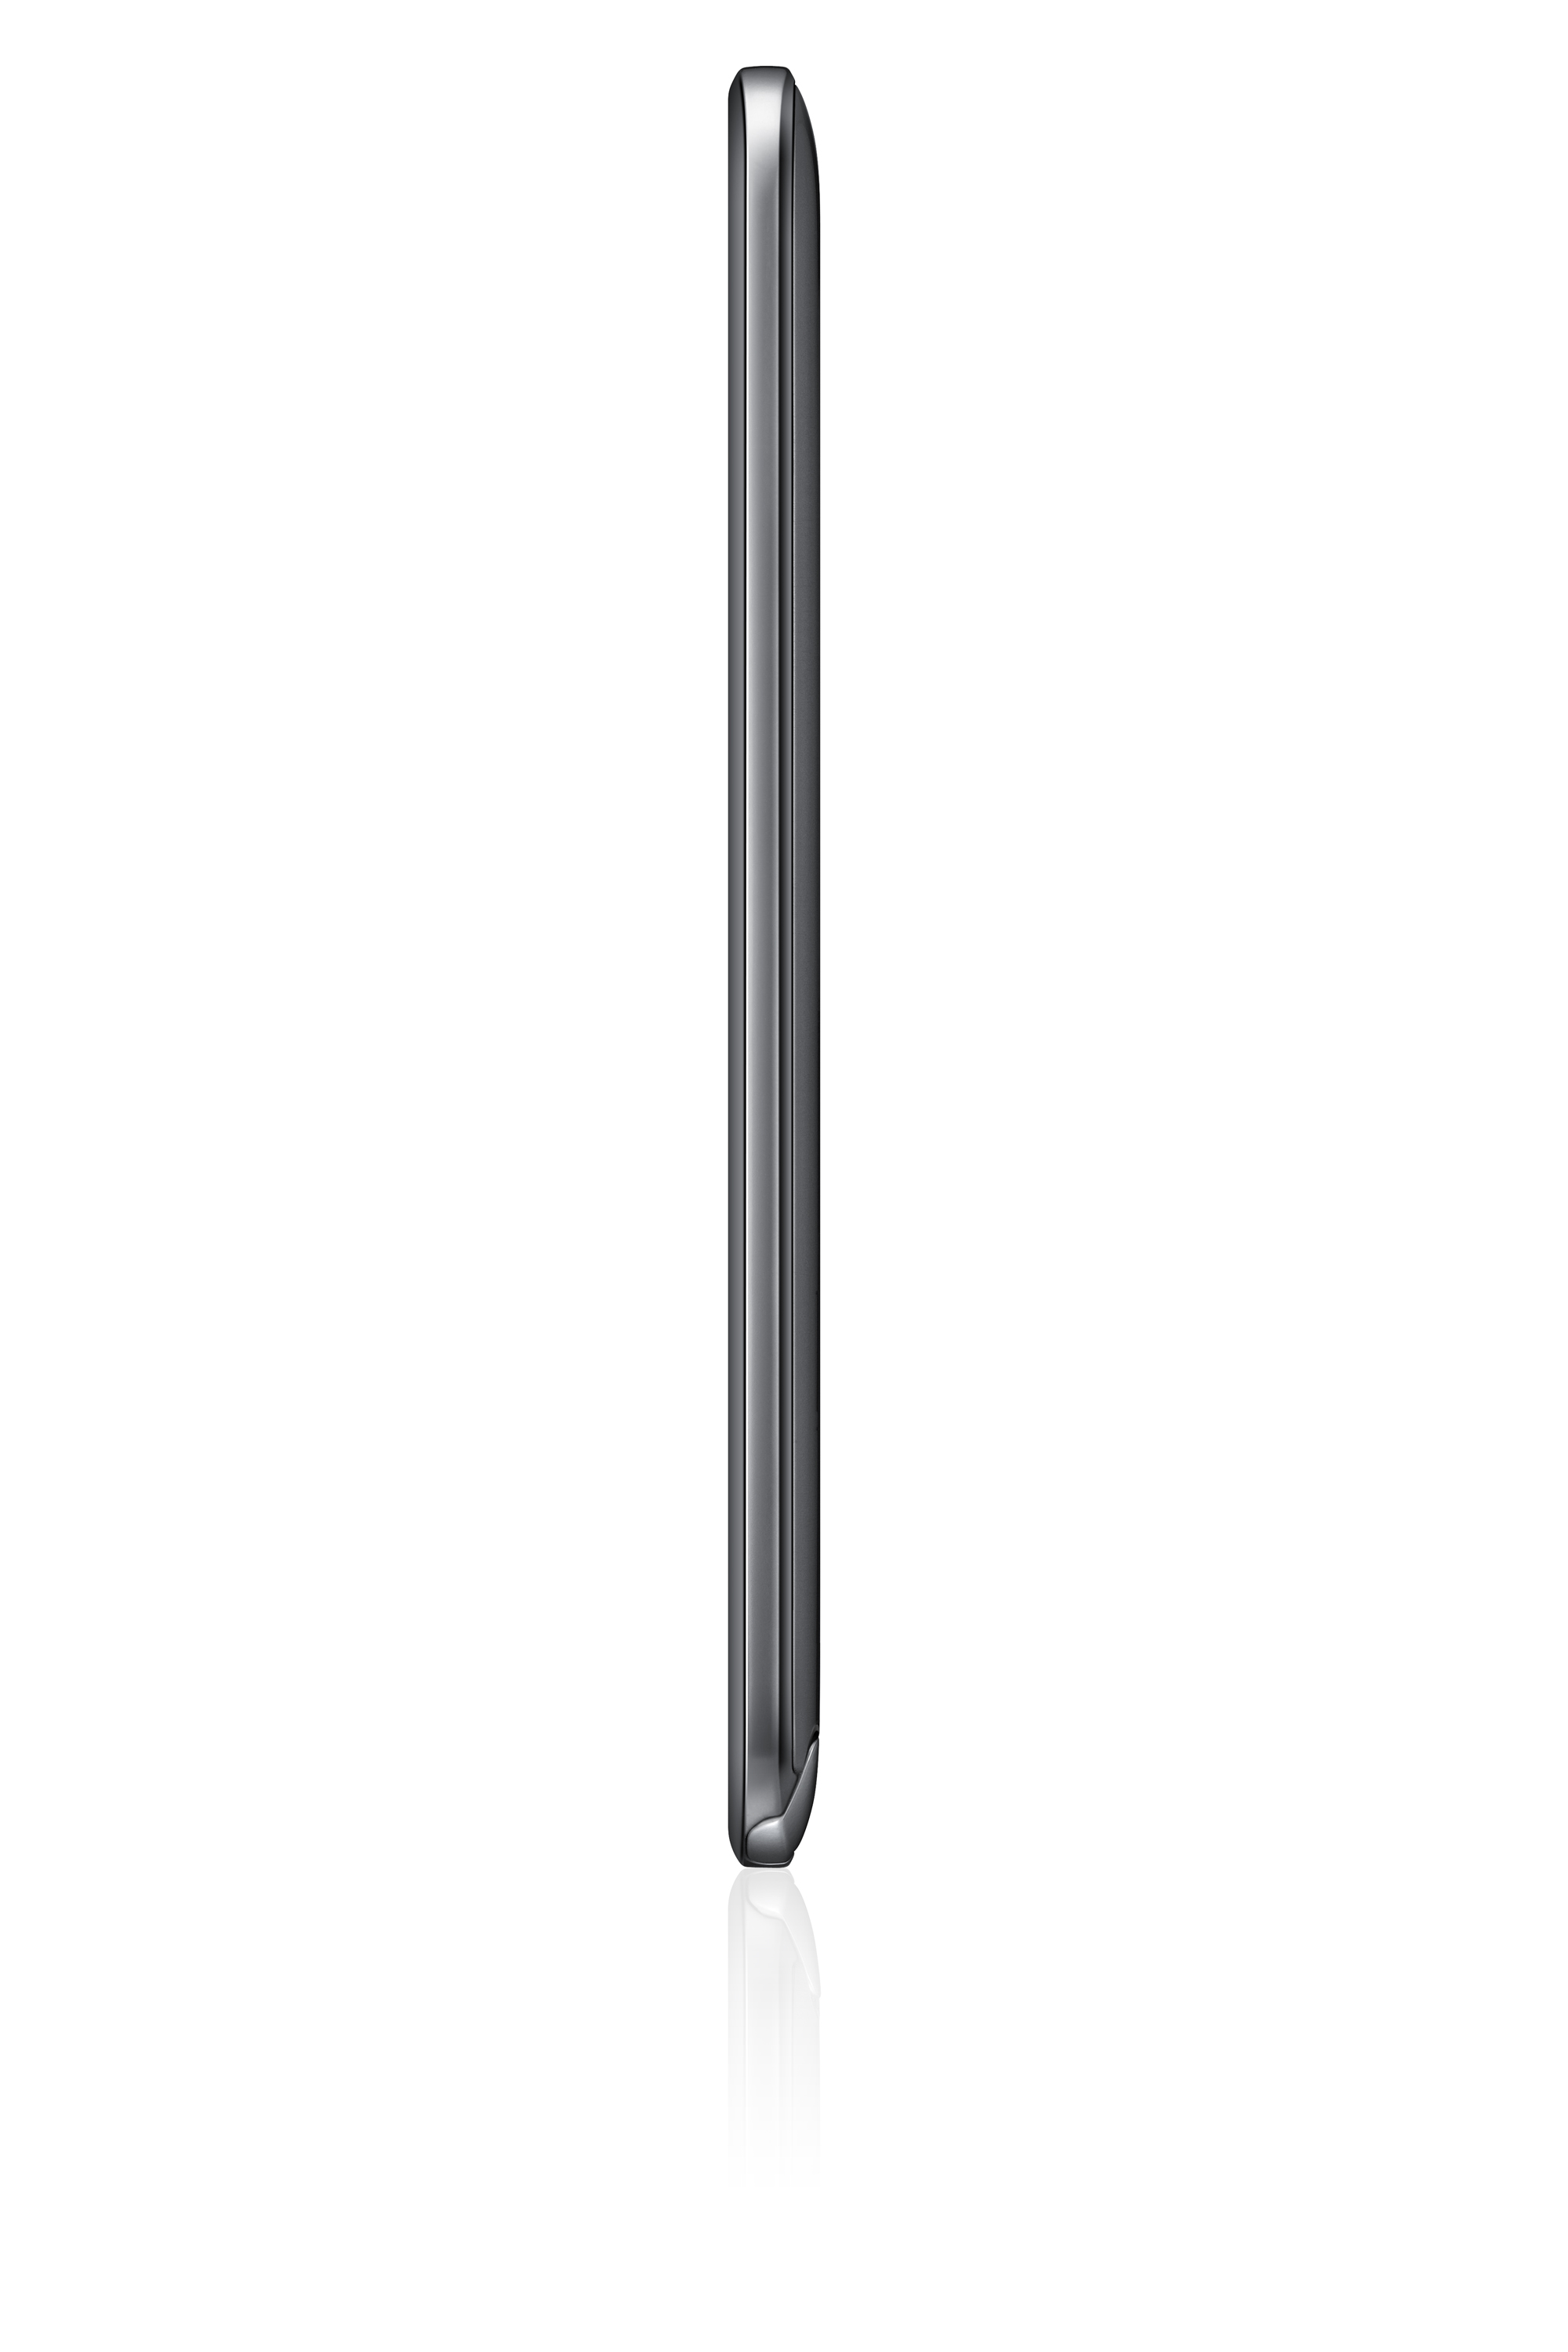 GALAXY Note 10.1 Product Image (6)